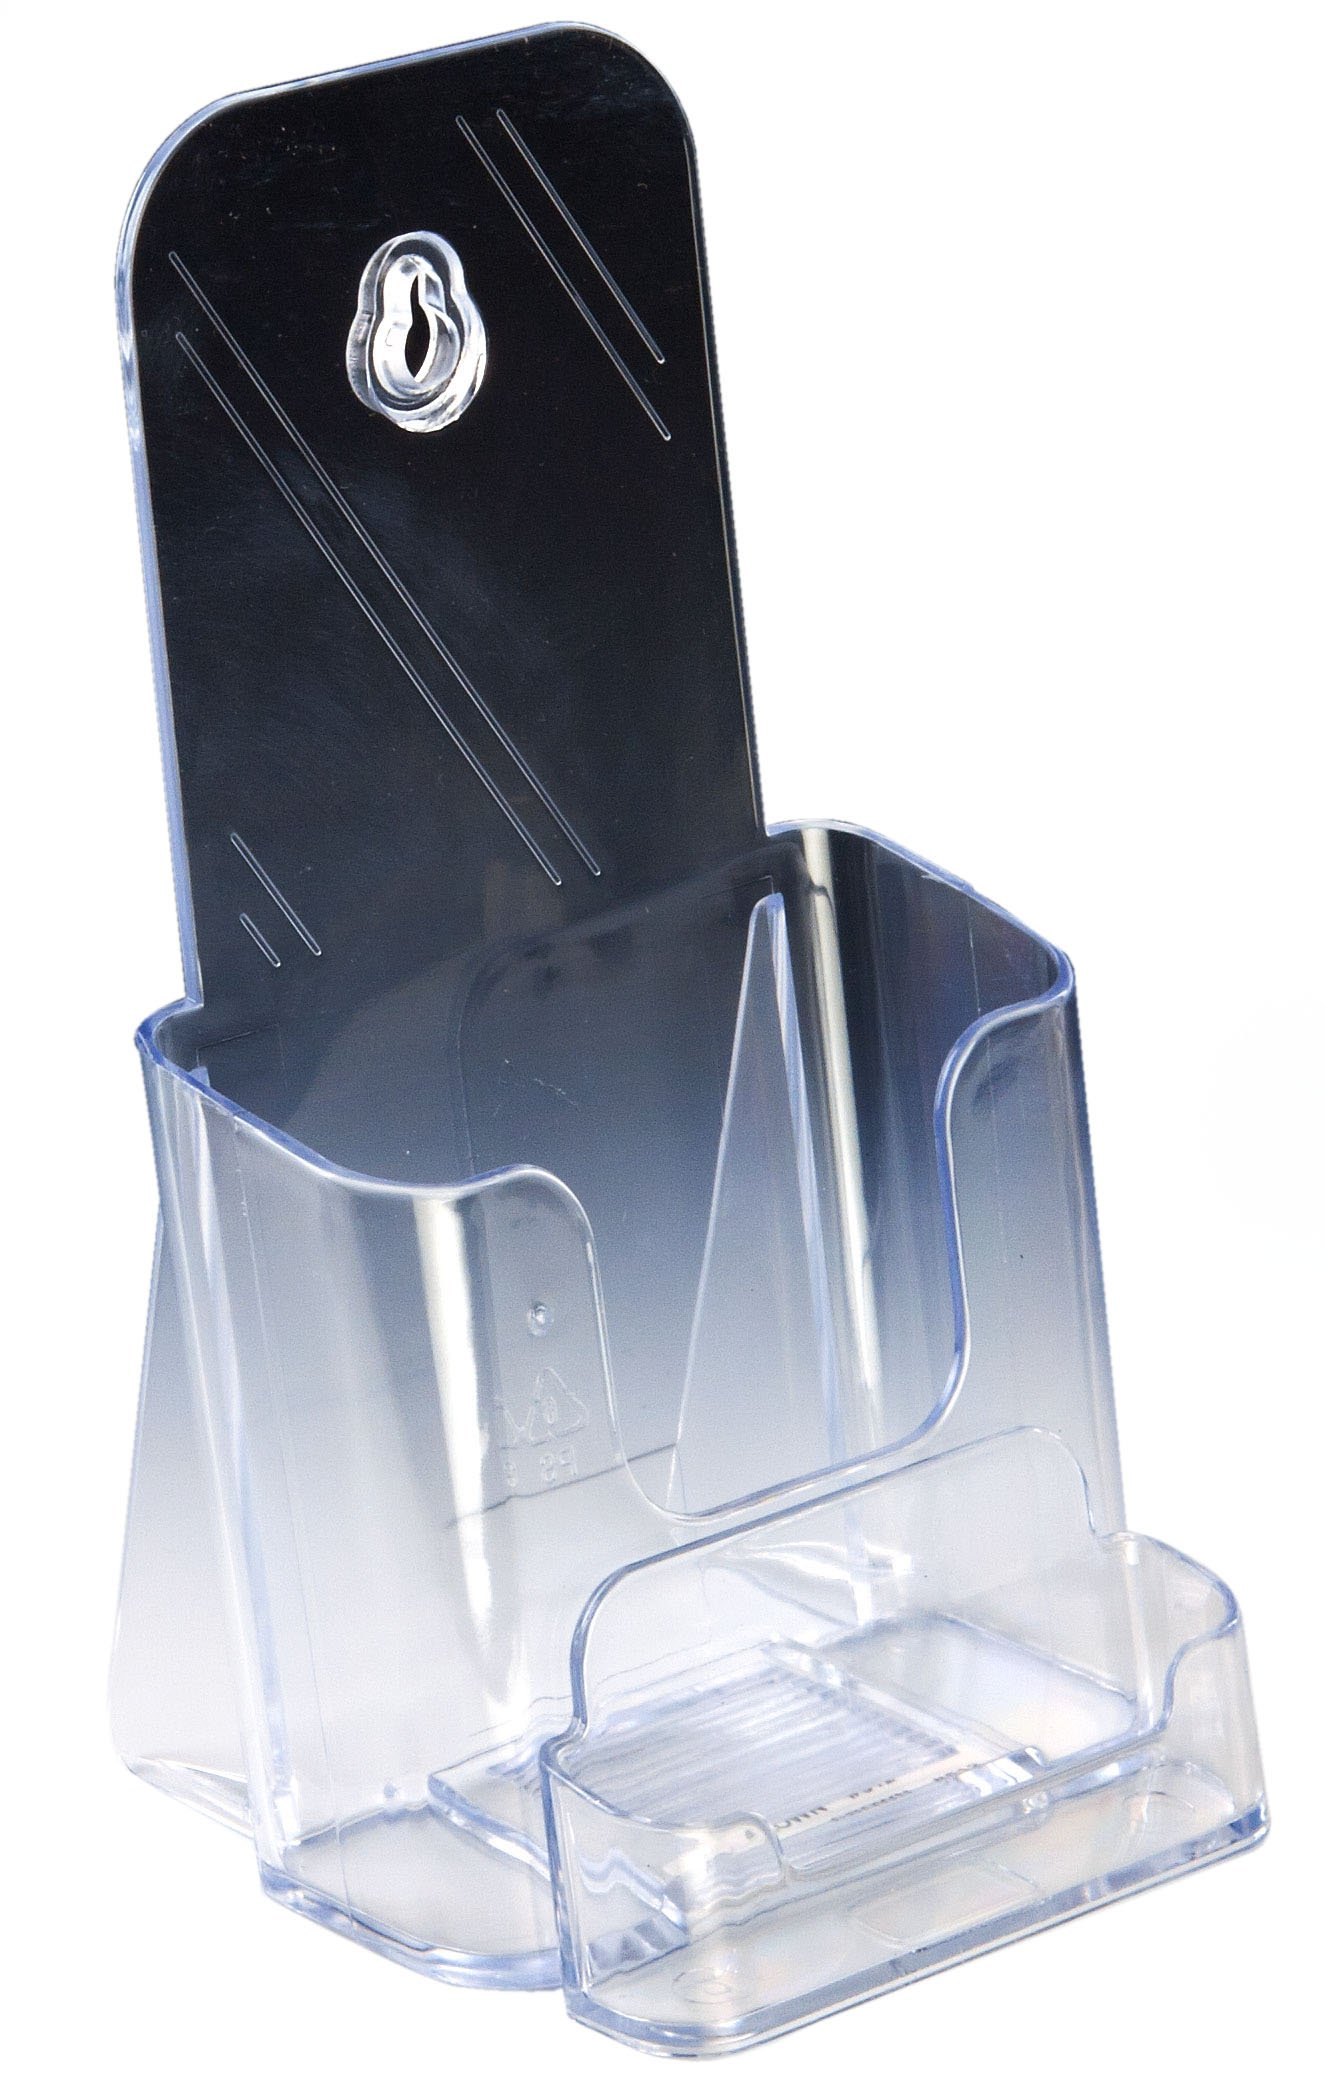 Displays2go Set of 60, Brochure Holder, Clear Injection Molded Plastic Literature Dispenser for 4 x 9 Inches Promotions - Countertop Leaflet Display Includes a Business Card Pocket (LDTK40CARD)